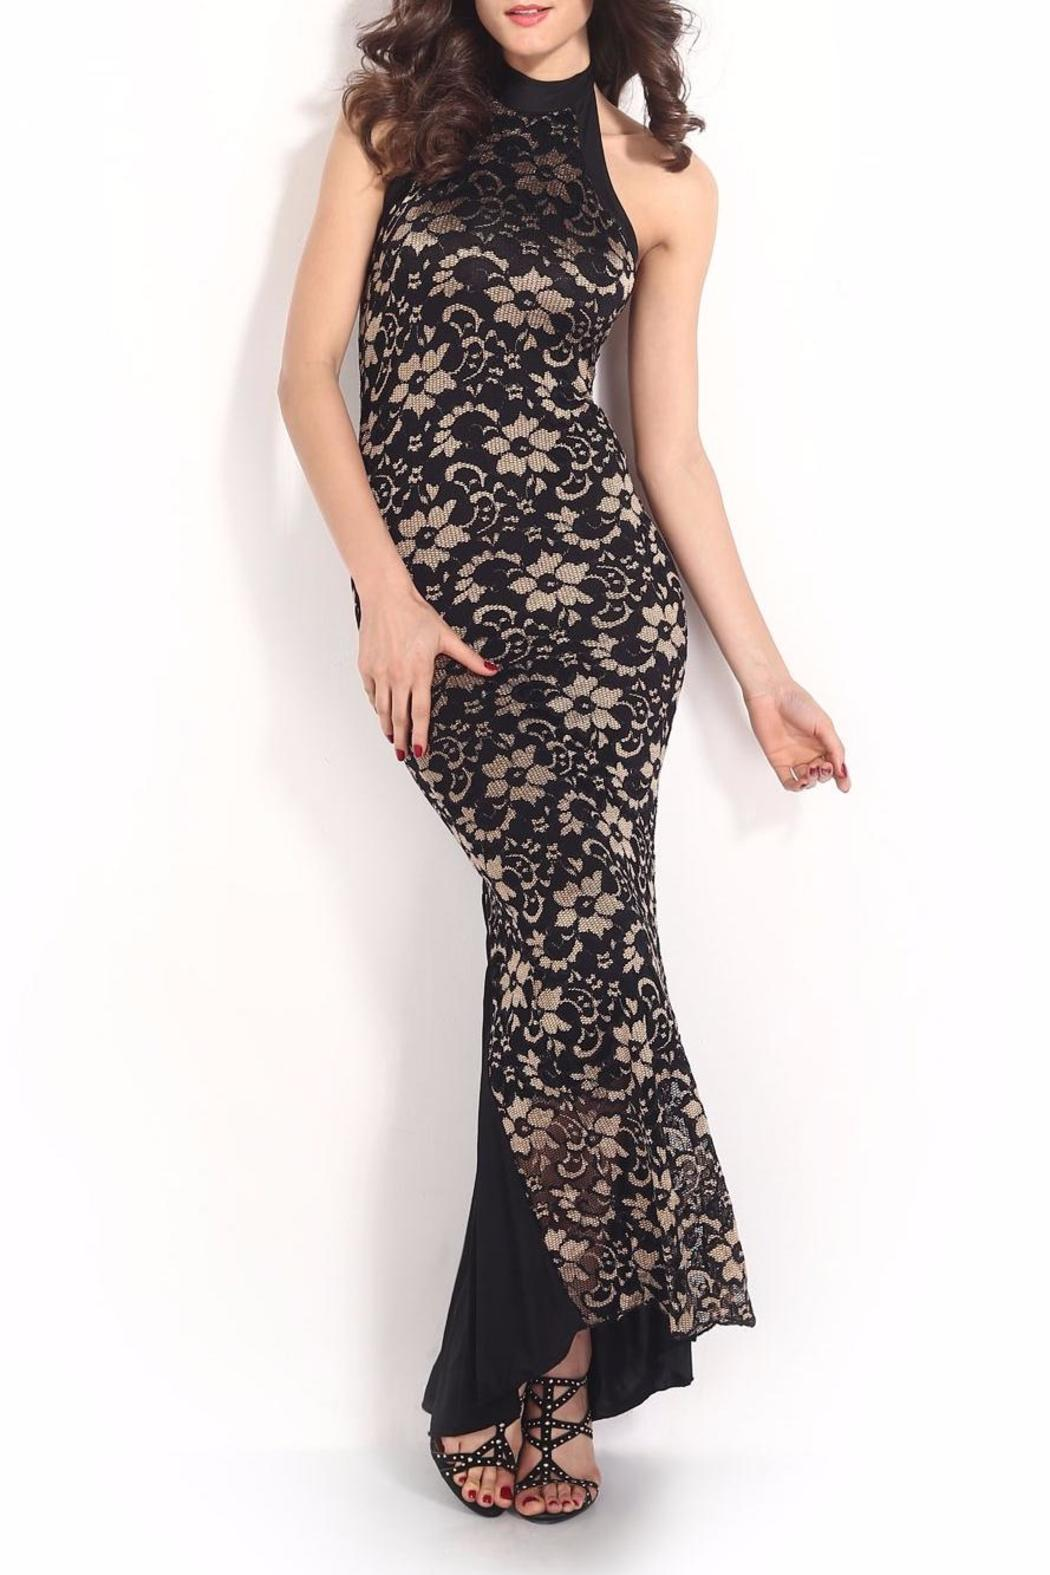 Adore Clothes & More Lace Long Dress - Front Full Image